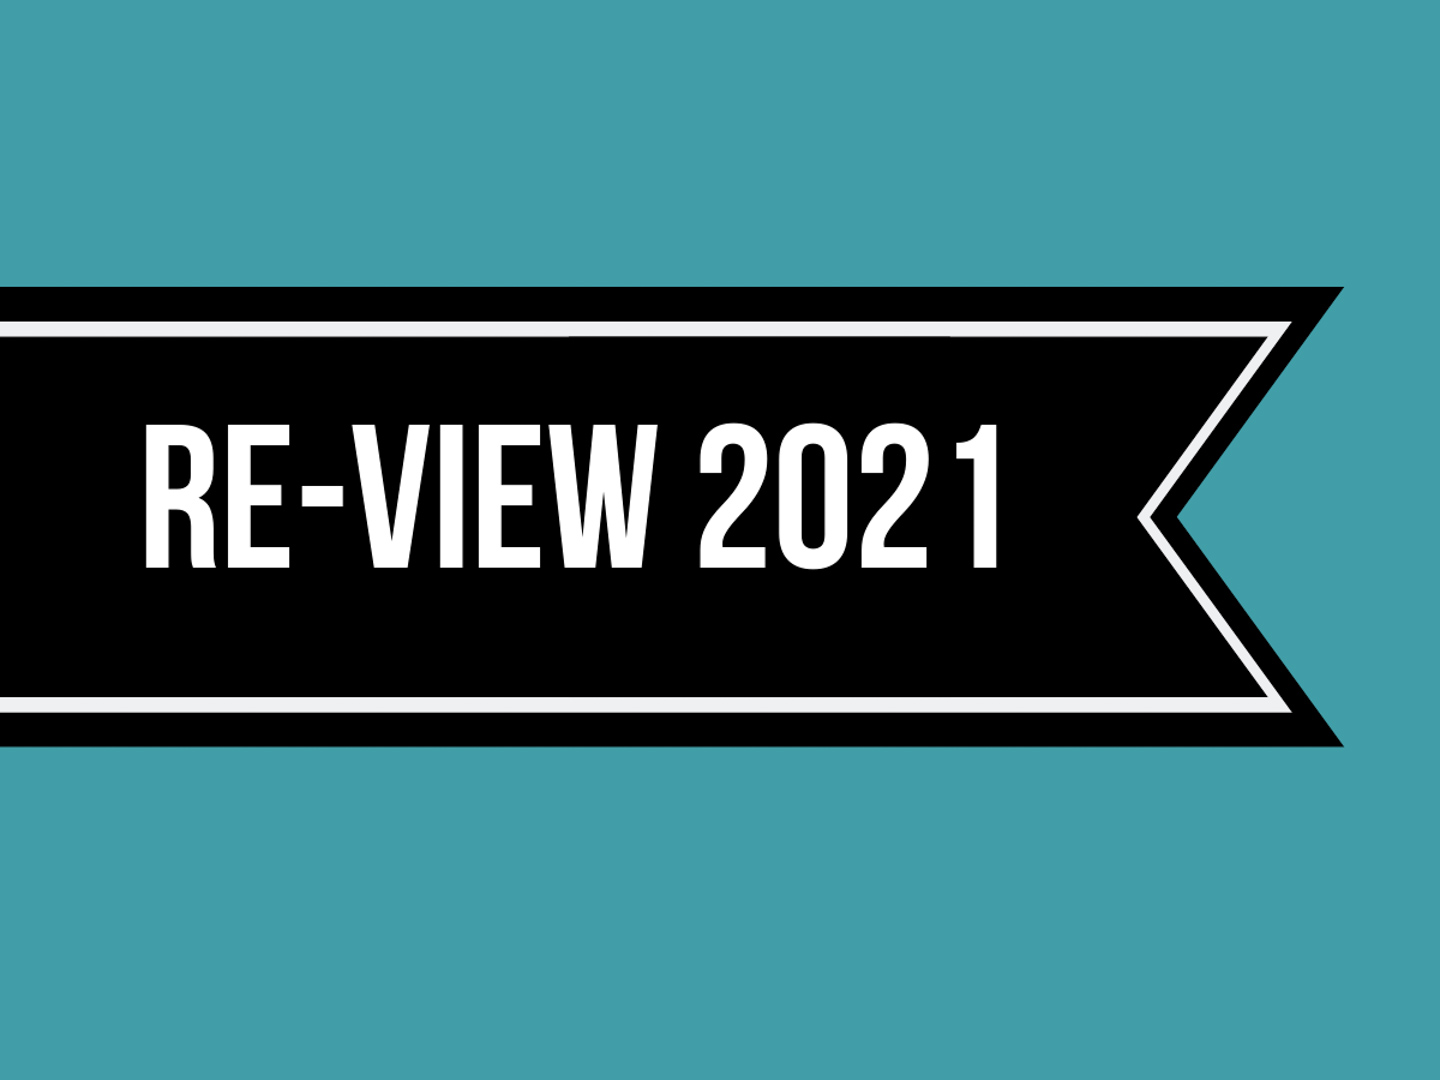 RE-VIEW ONLINE 2021